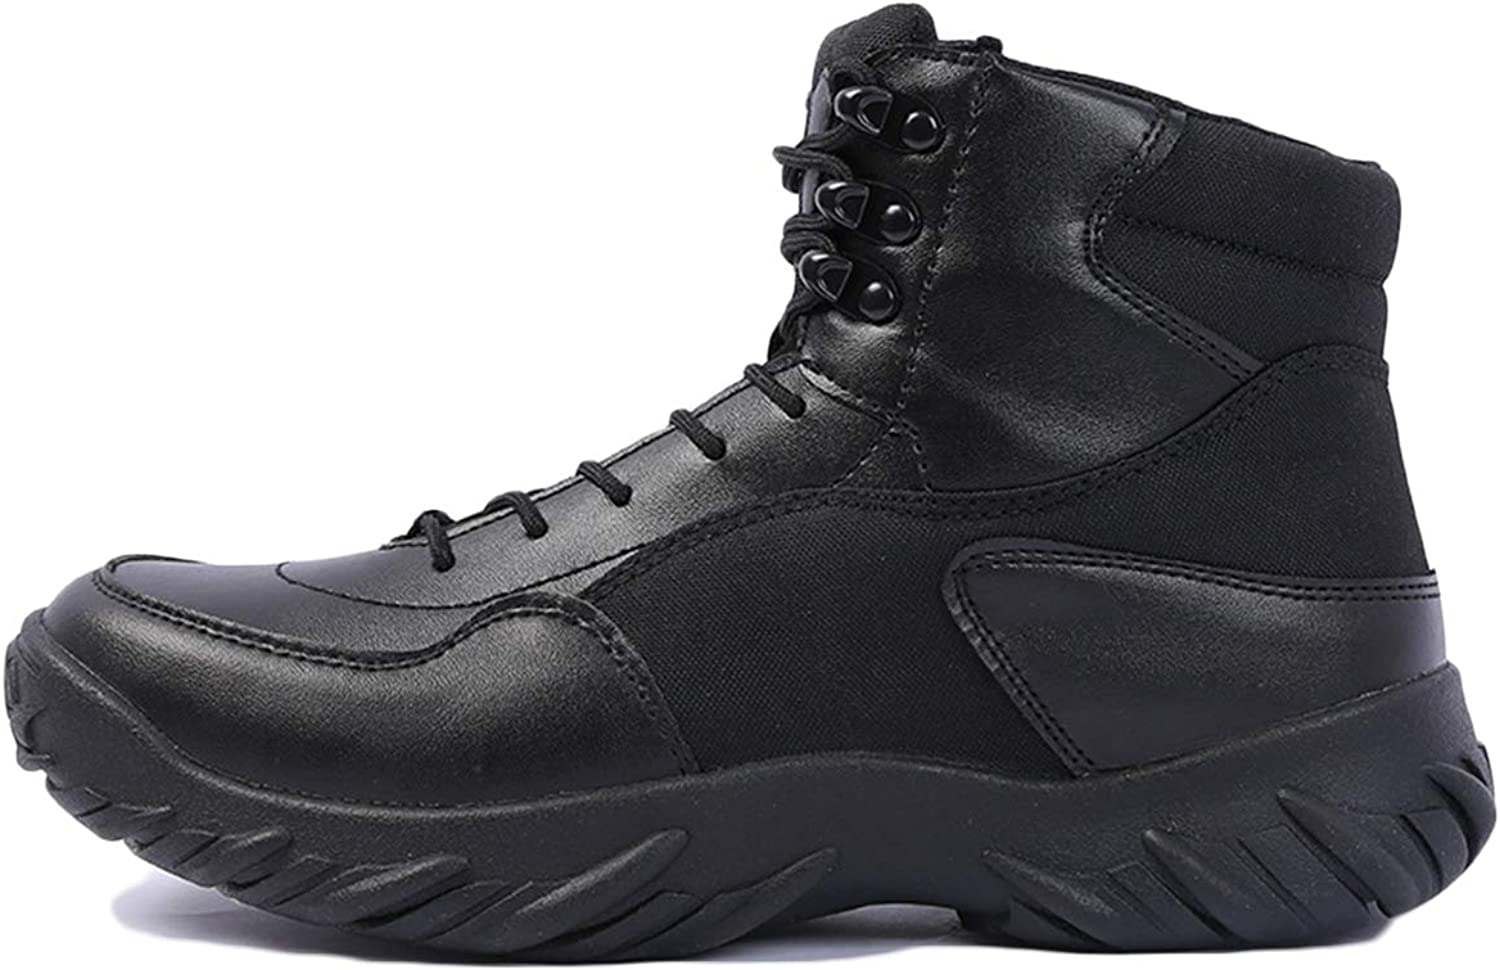 Combat Boots G-6 Leather Side Zip Army Tactical Boots Delta Military Work Army shoes Safety Ankle Boots Breathable Commando Outdoor Desert Tactical Military Patrol Boots